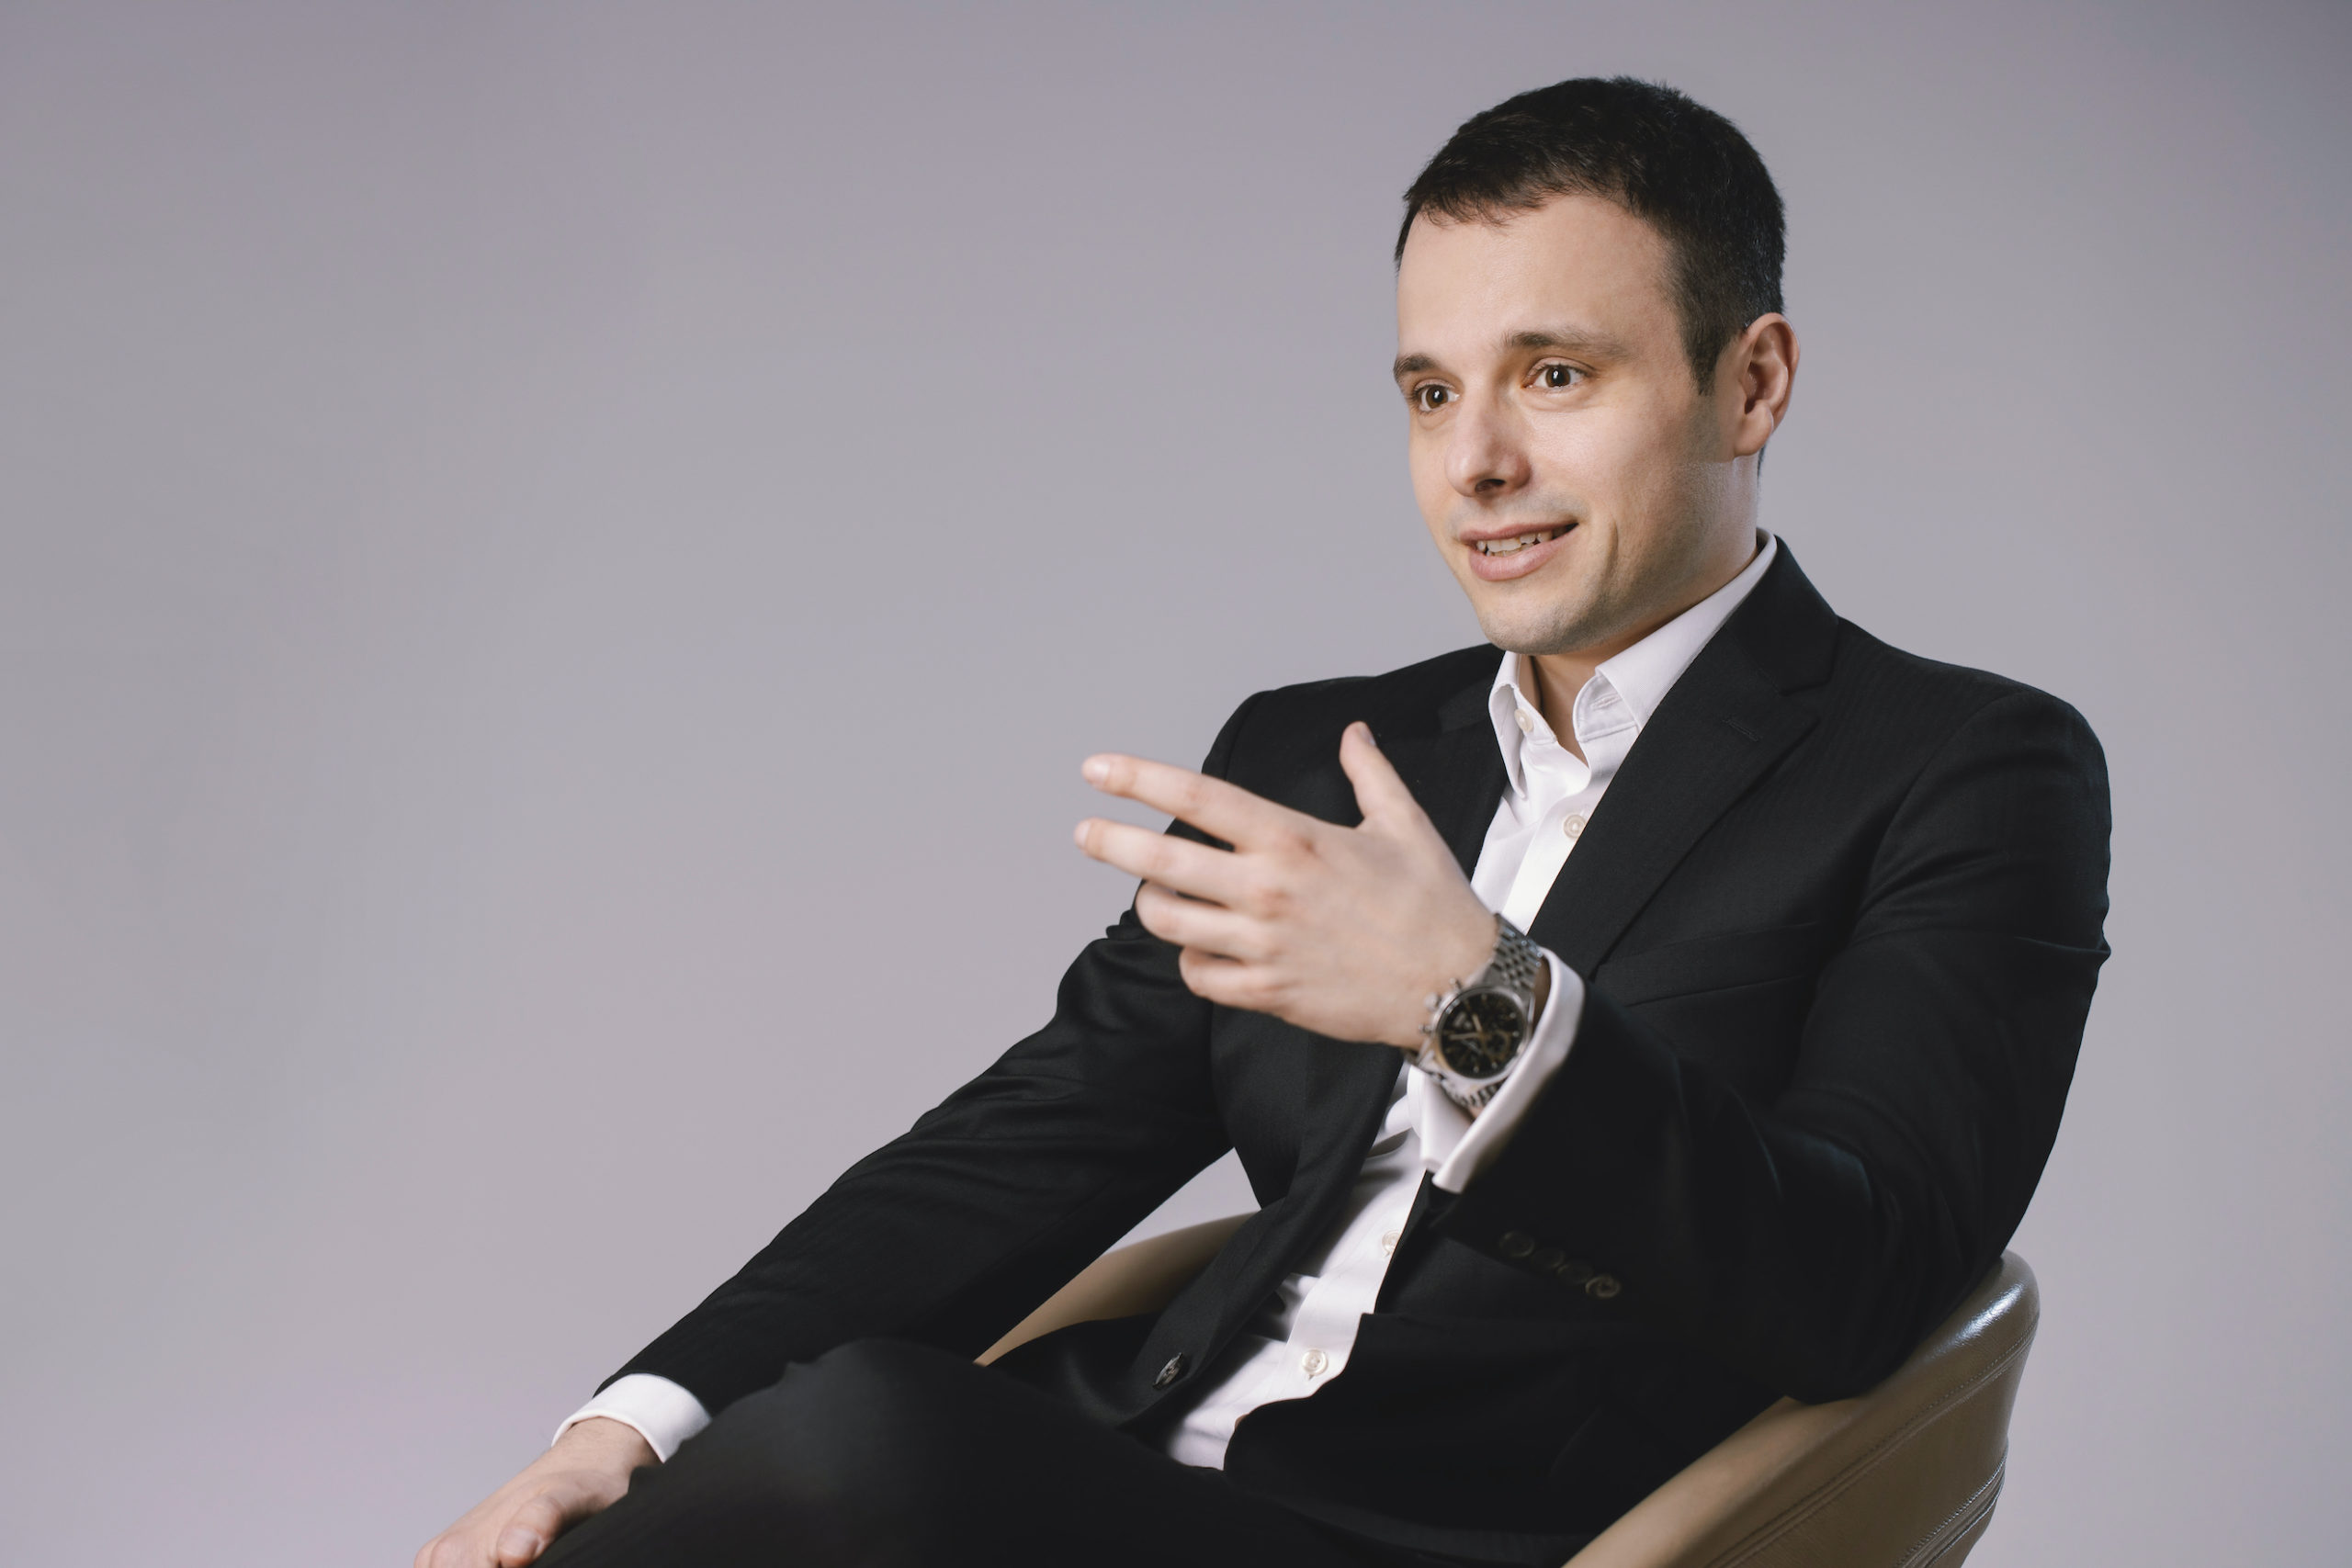 Darko Gacov: Is the growth of virtuals here to stay